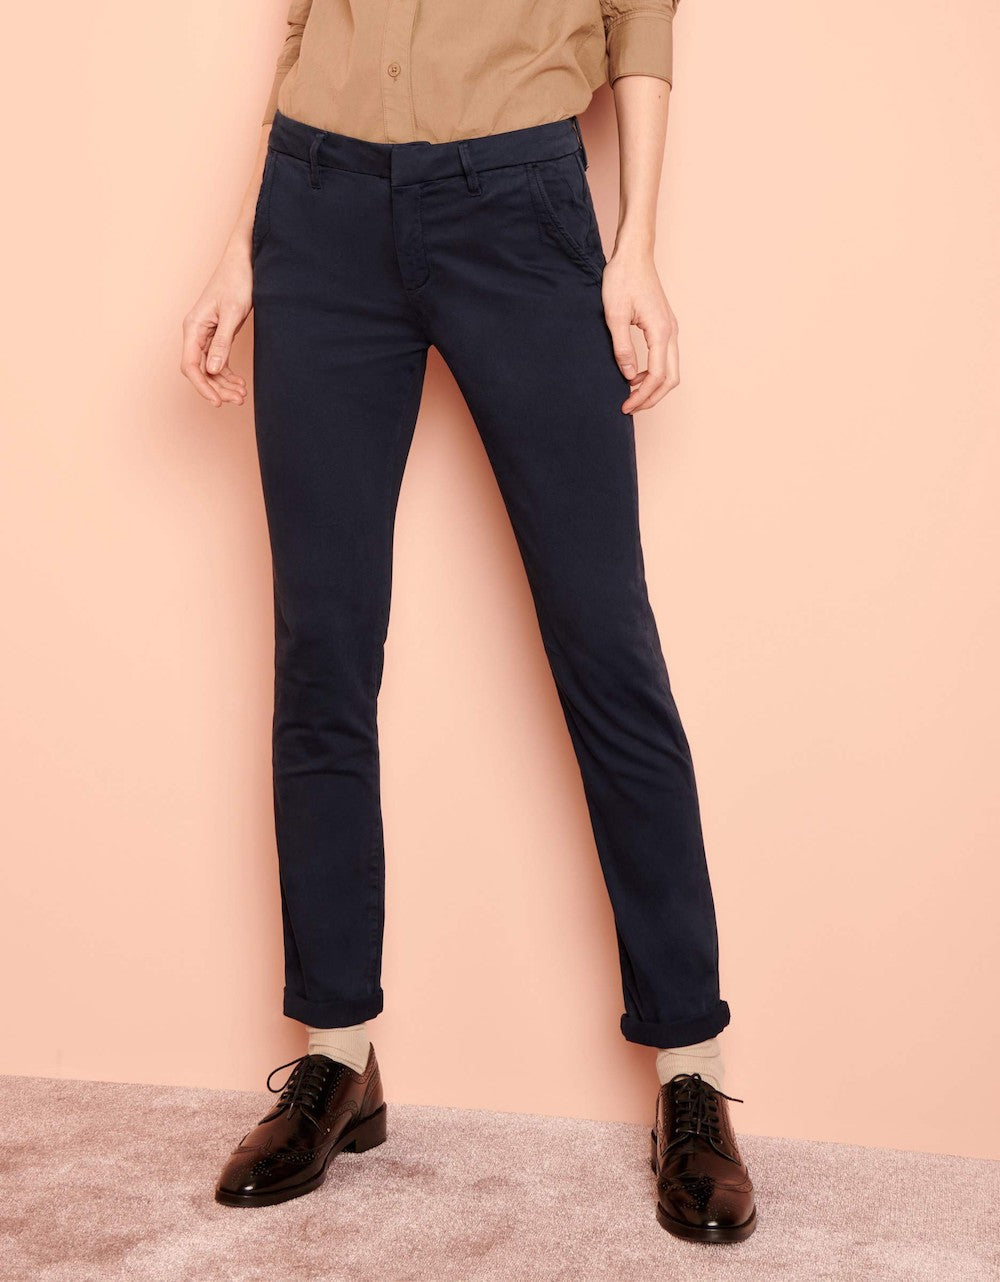 Reiko 'Sandy 2' Dark Navy Chino Trousers